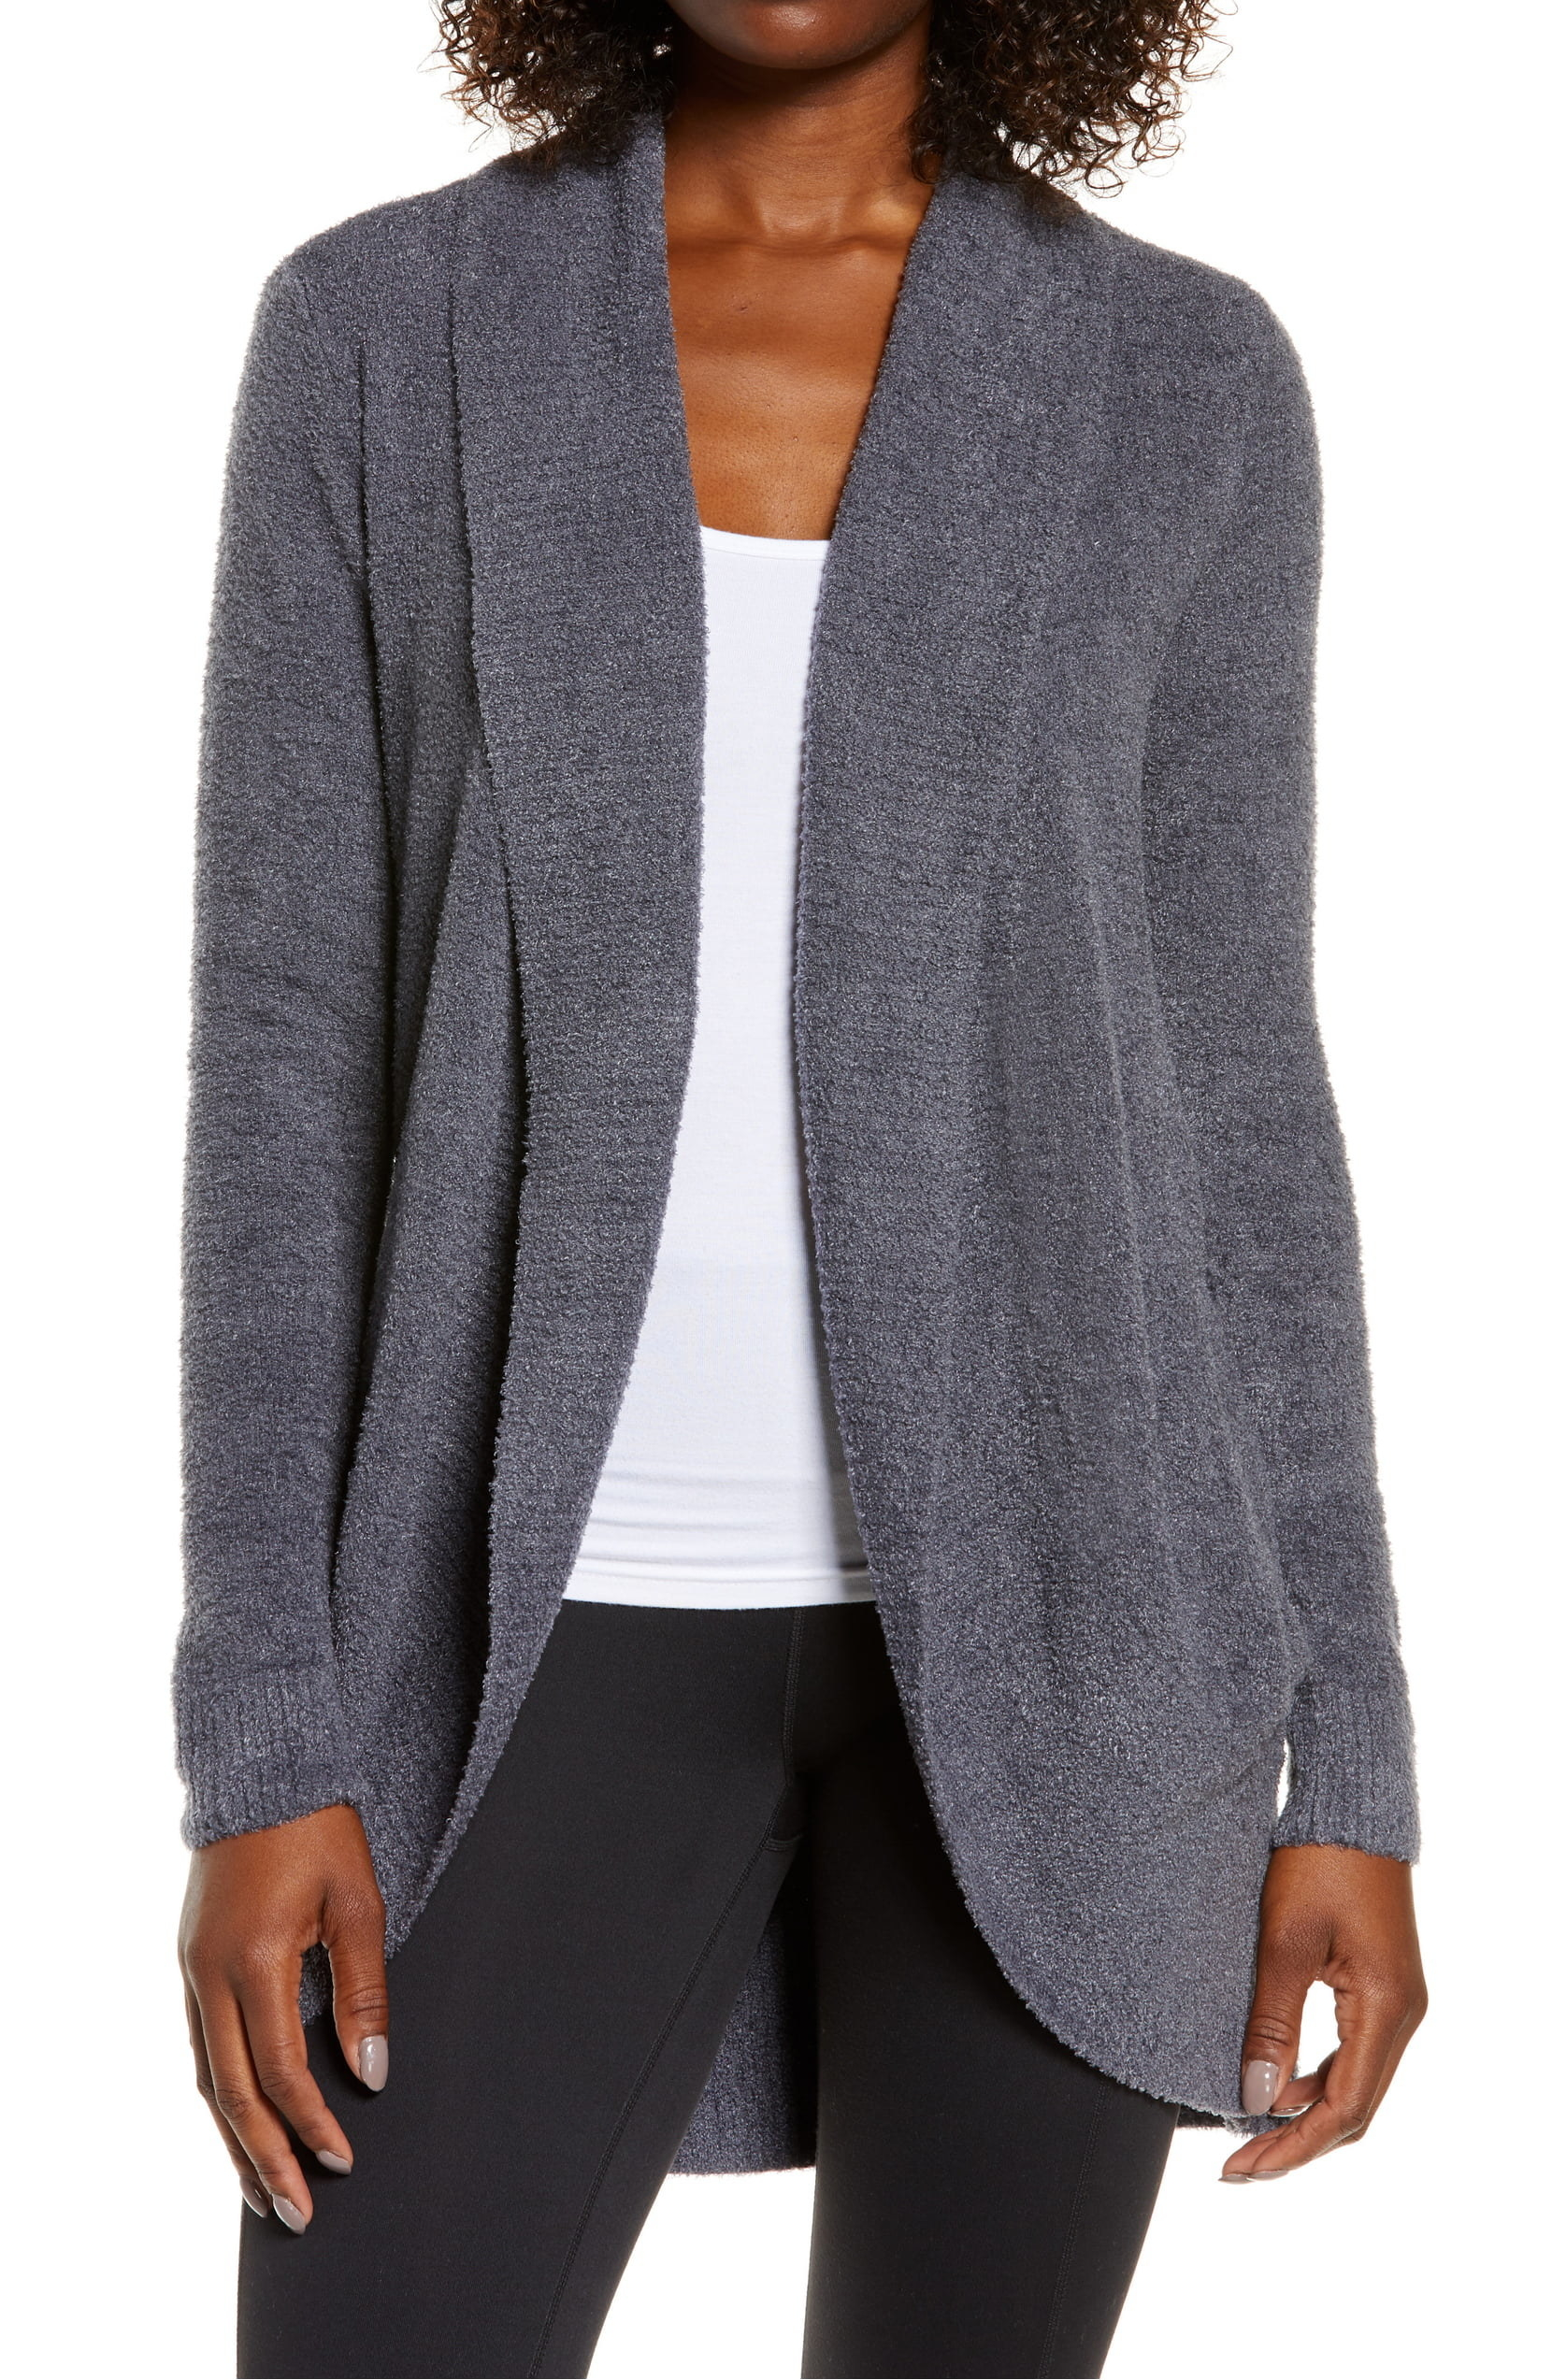 A model wearing the Barefoot Dreams CozyChic Lite Circle Cardigan.